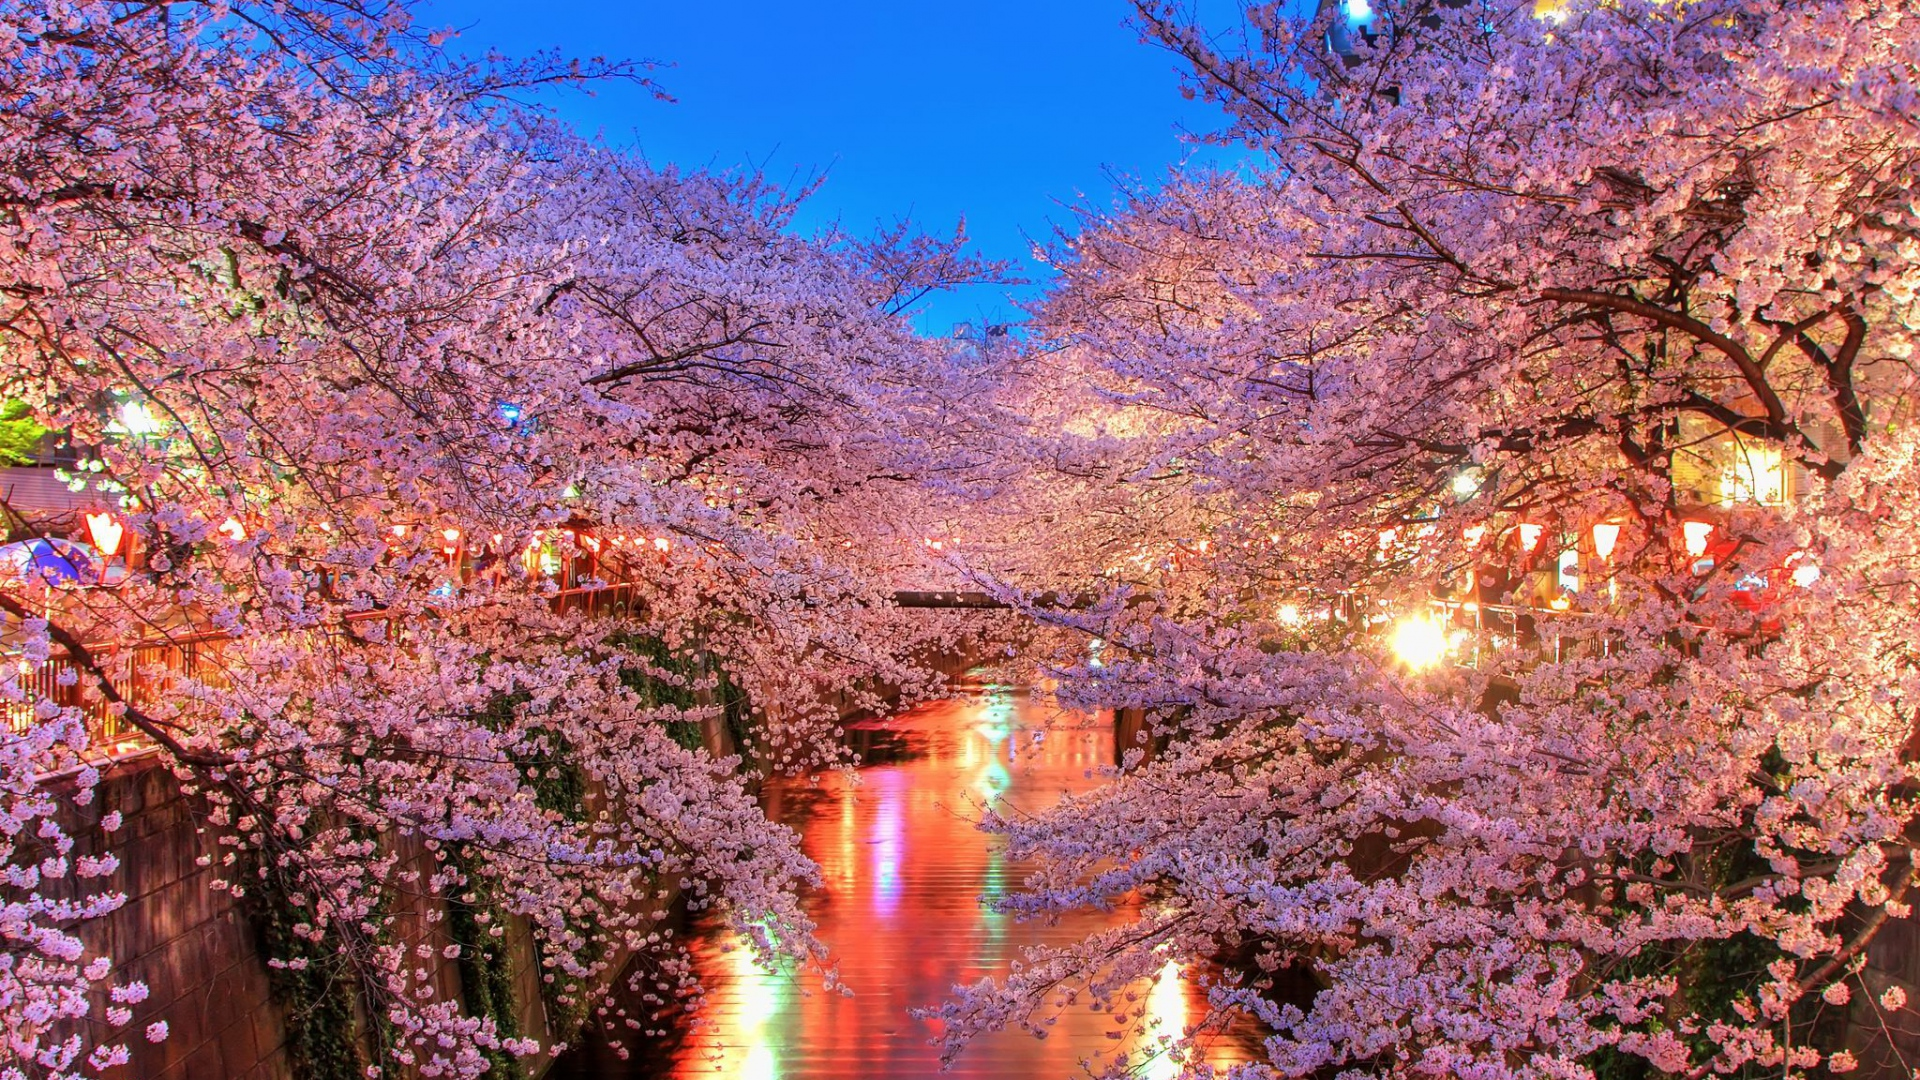 Sakura trees are a sight to behold.